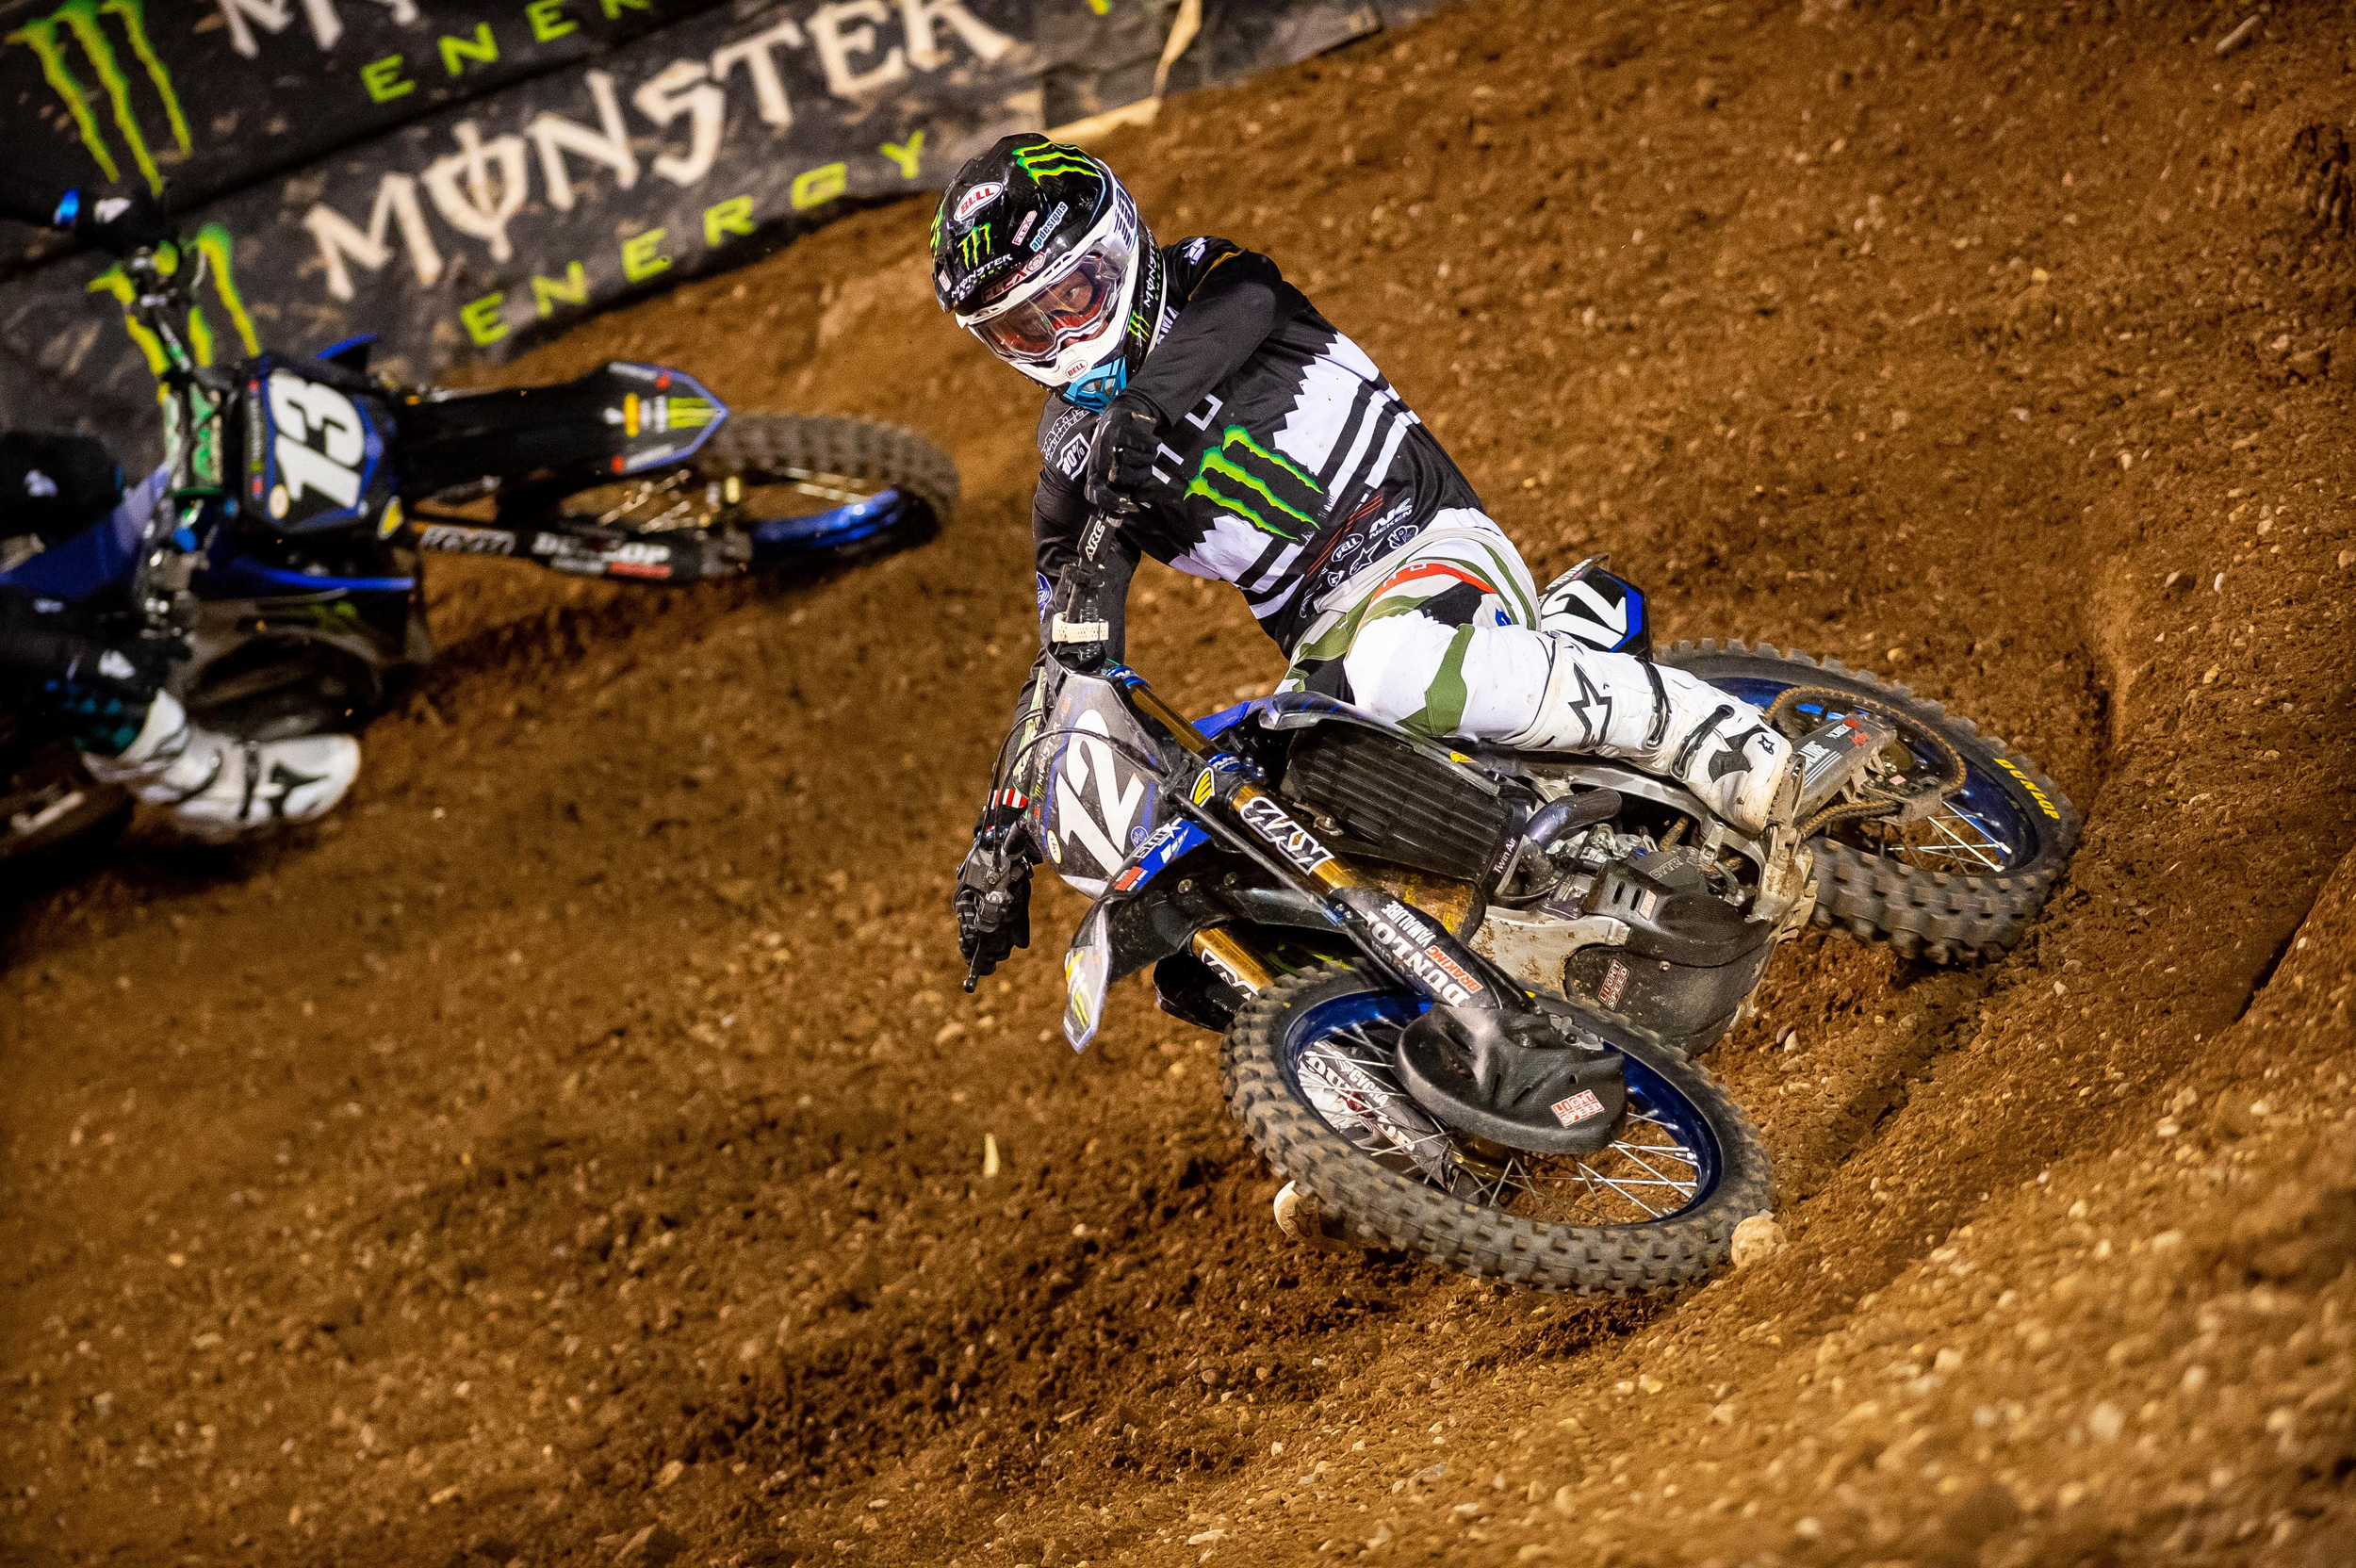 Shane McElrath won his second consecutive race, his third of the season. It puts him into a tie in the Eastern Regional 250SX Class title chase. Photo Credit- Feld Entertainment, Inc.